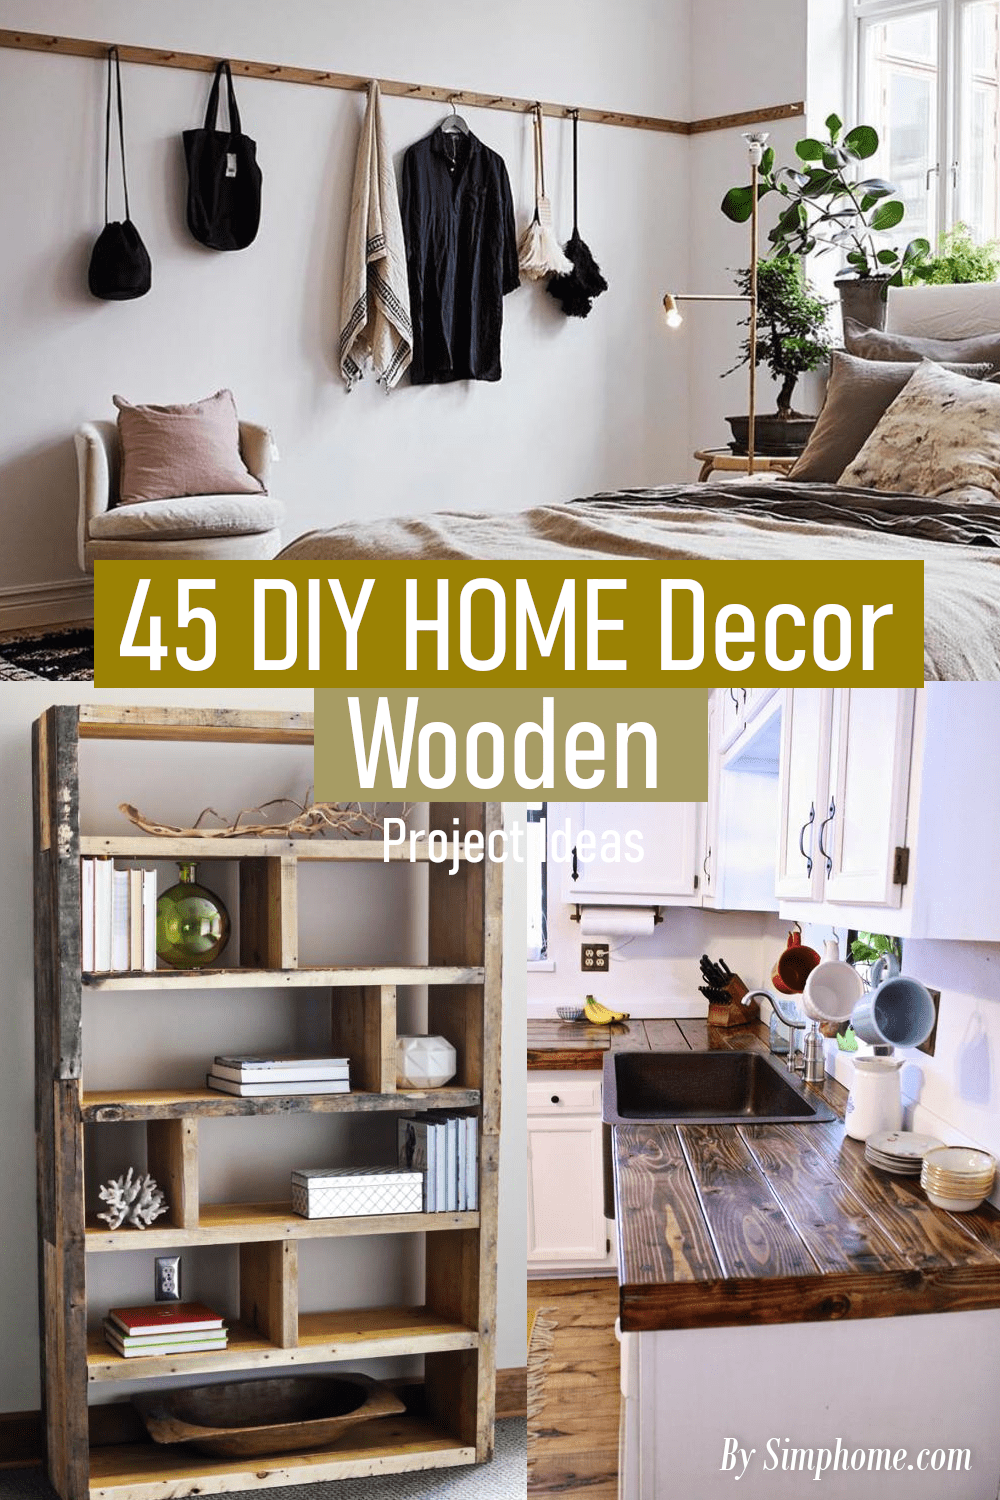 45 DIY Home Decor Wooden Projects via Simphome.com ..Featured